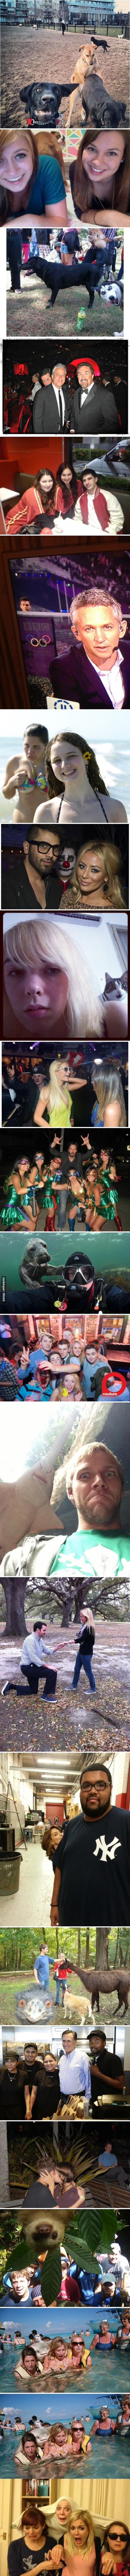 Photobomb Compilation